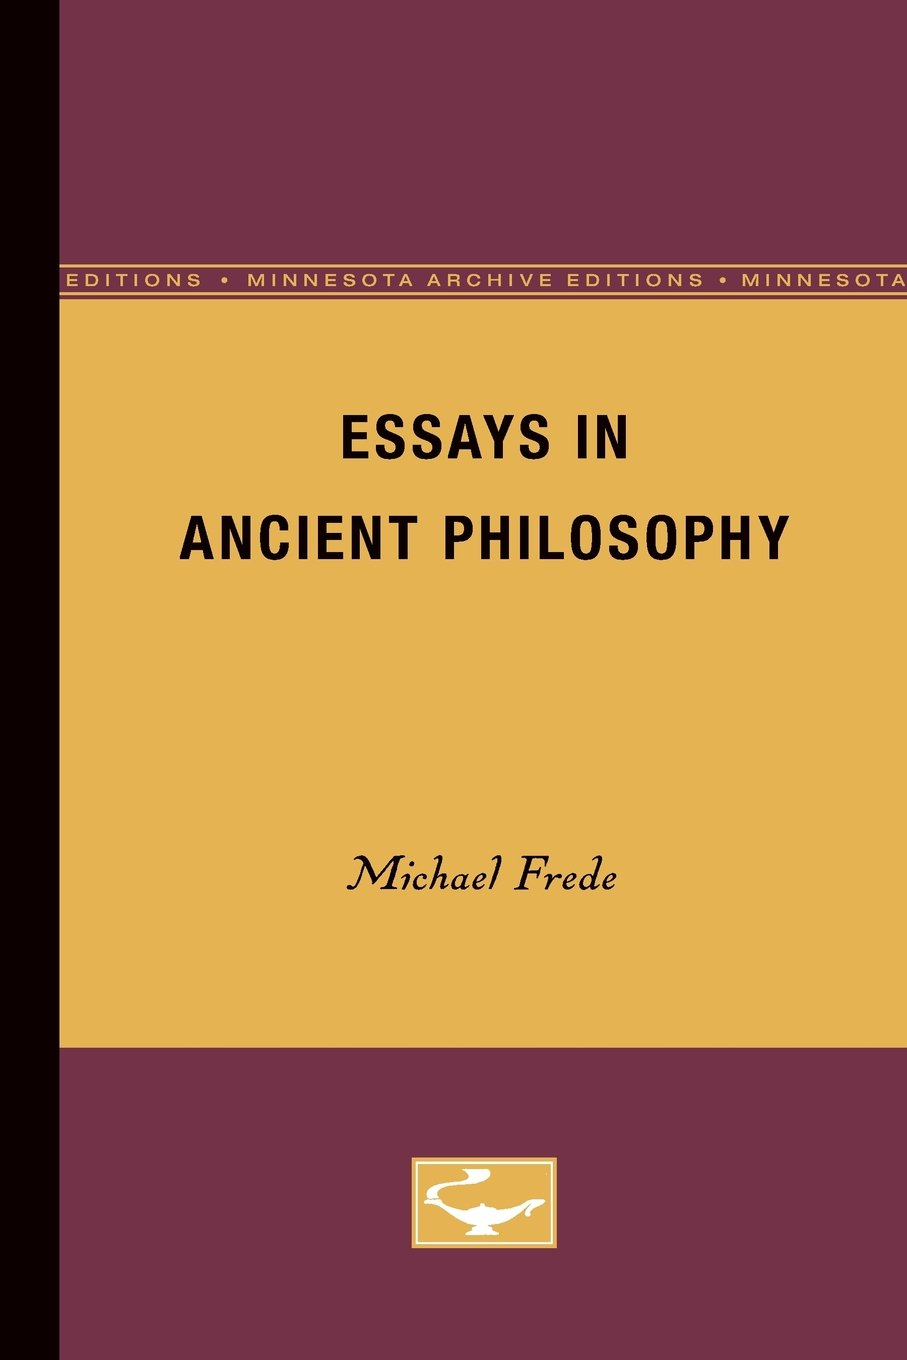 essays in ancient philosophy michael frede 9780816612758  essays in ancient philosophy michael frede 9780816612758 com books